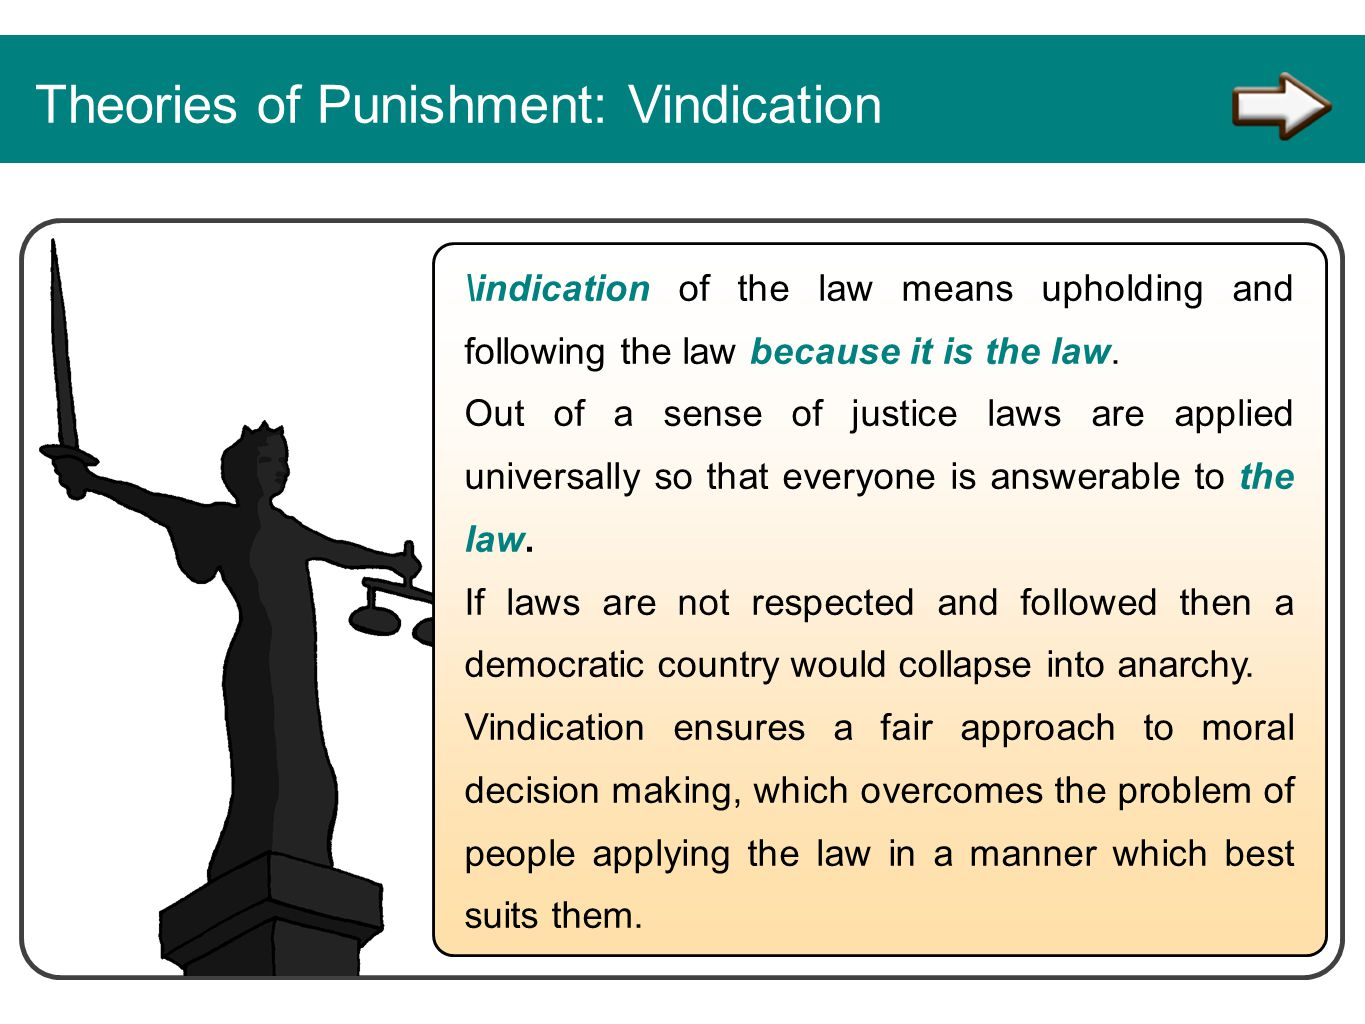 Theories of Punishment: Vindication \indication of the law means upholding and following the law because it is the law. Out of a sense of justice laws